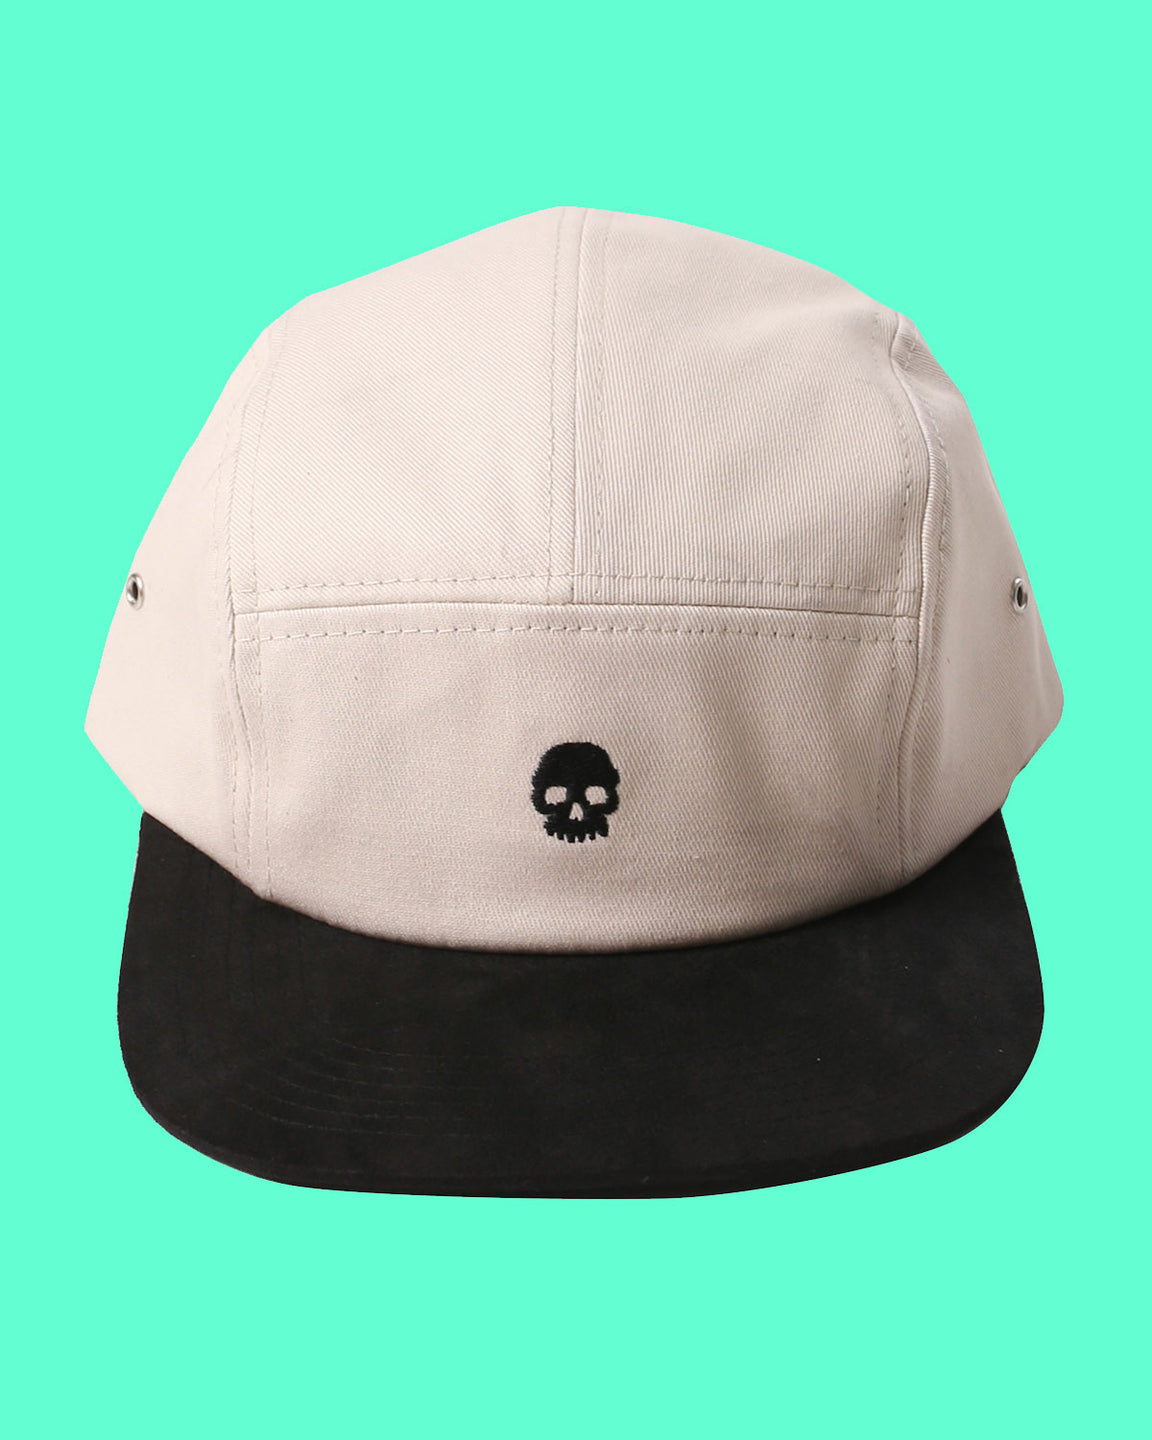 The Cool Skull 5 Panel